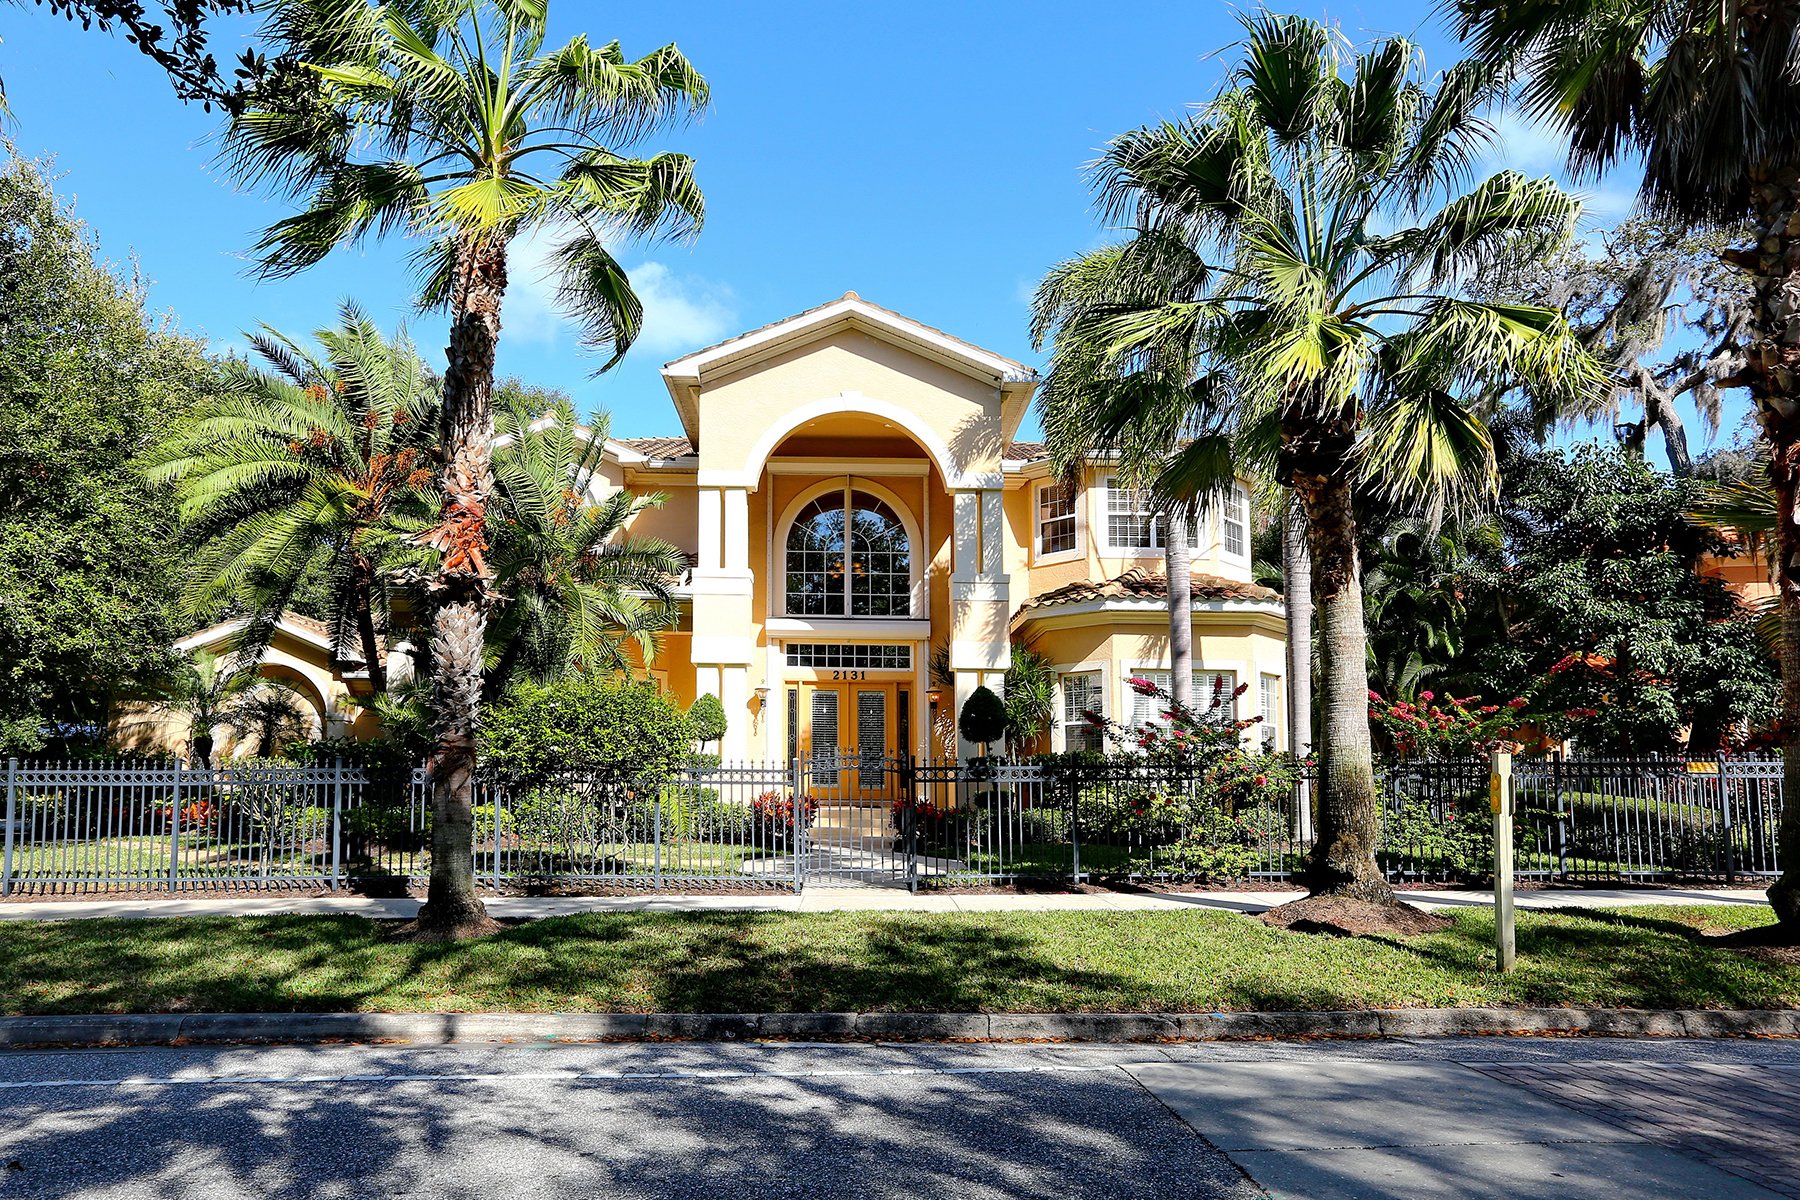 Single Family Home for Sale at MCCLELLAN PARK 2131 Mcclellan Pkwy McClellan Park, Sarasota, Florida 34239 United States